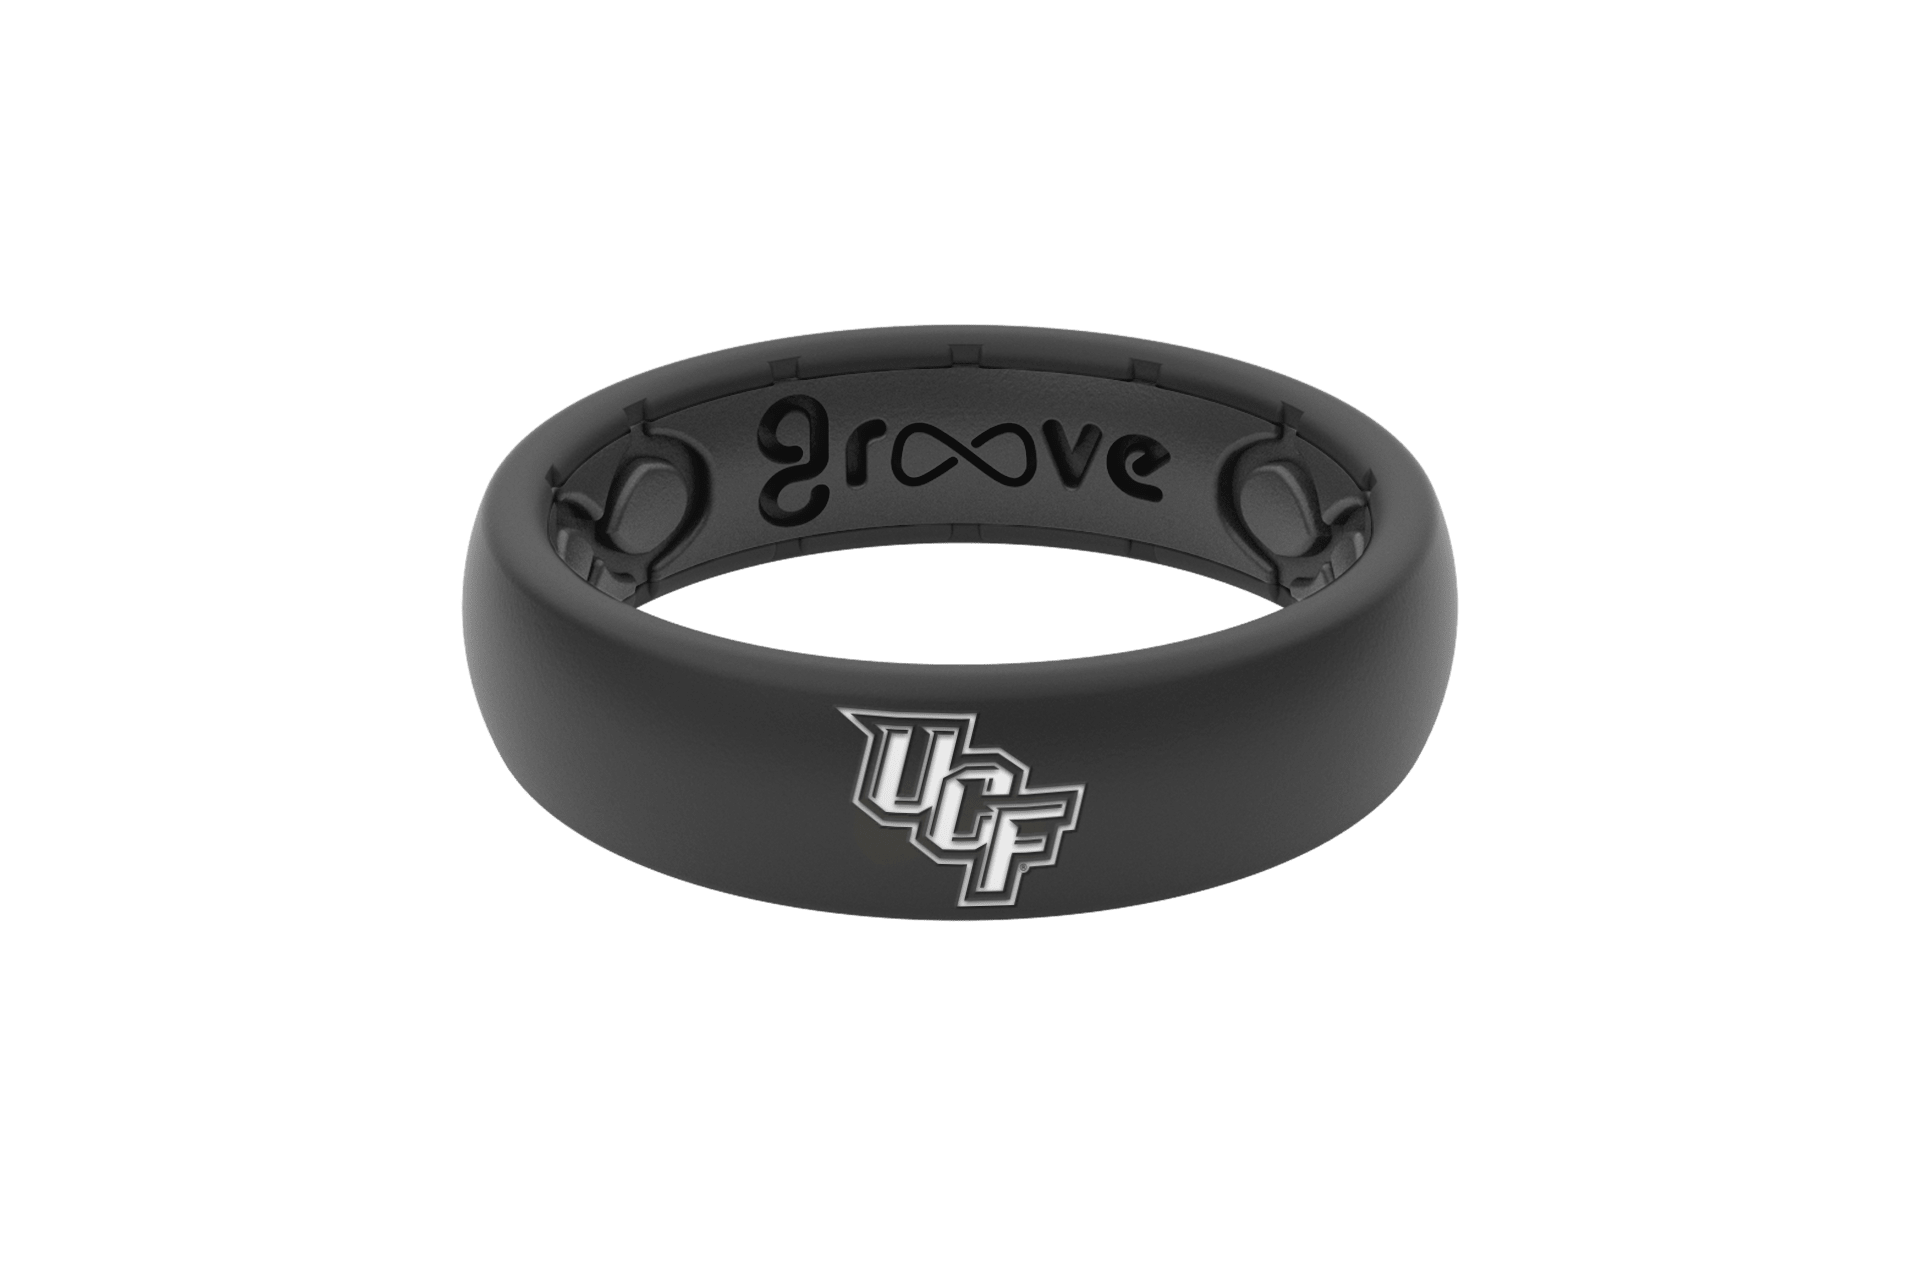 Thin College Central Florida Black Logo - Groove Life Silicone Wedding Rings